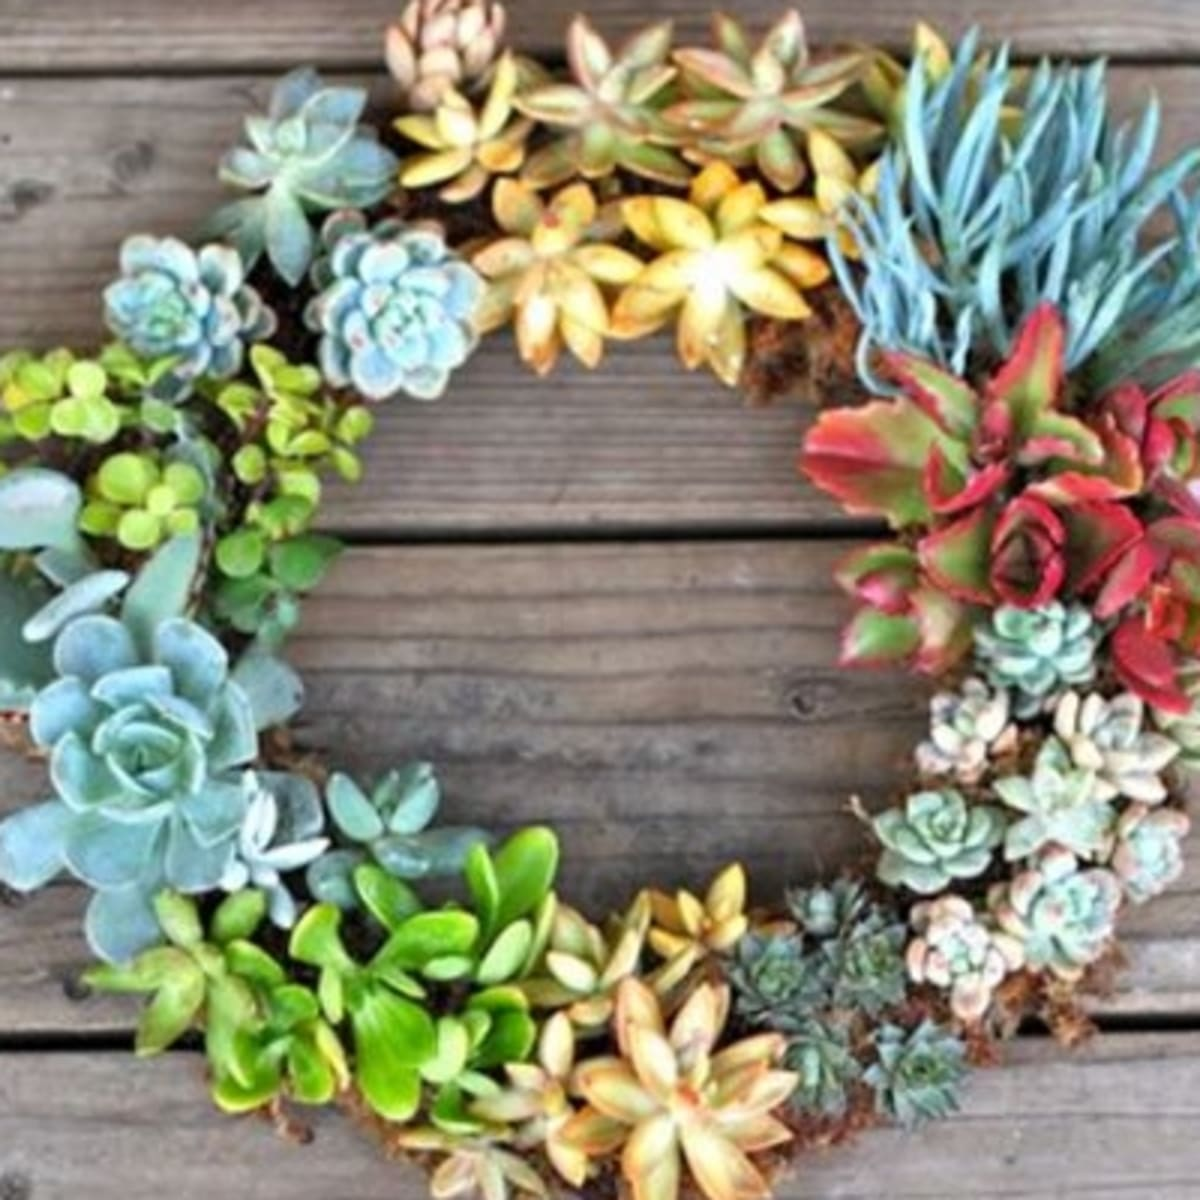 Garden Trend We Love Make Living Wall Art With Succulents Organic Authority